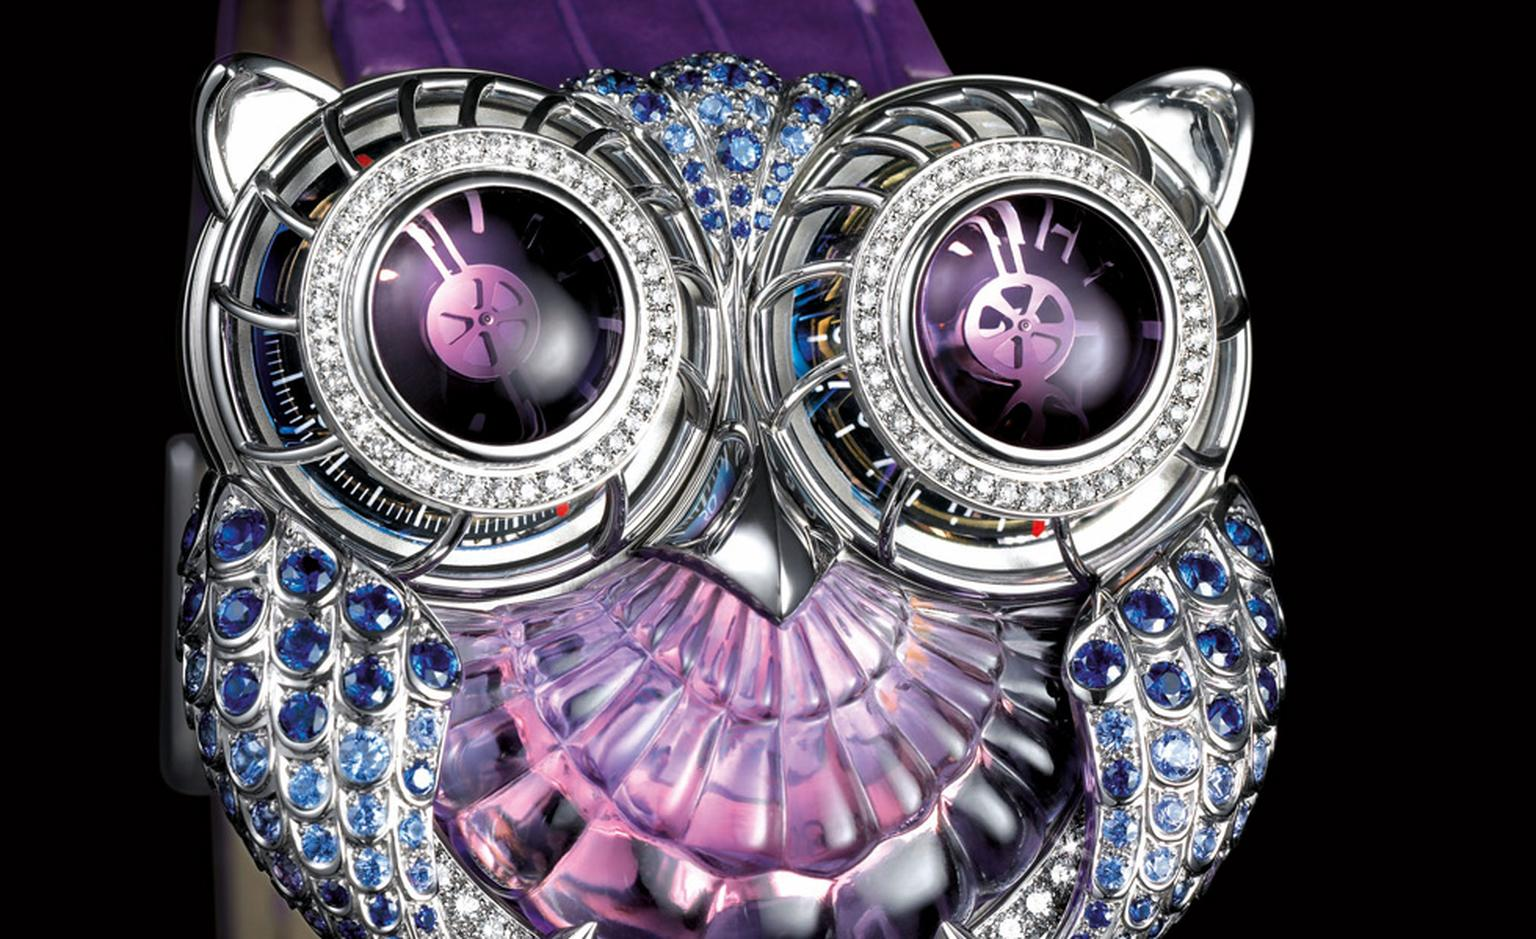 Max Busser's Owl watch in collaboration with Boucheron